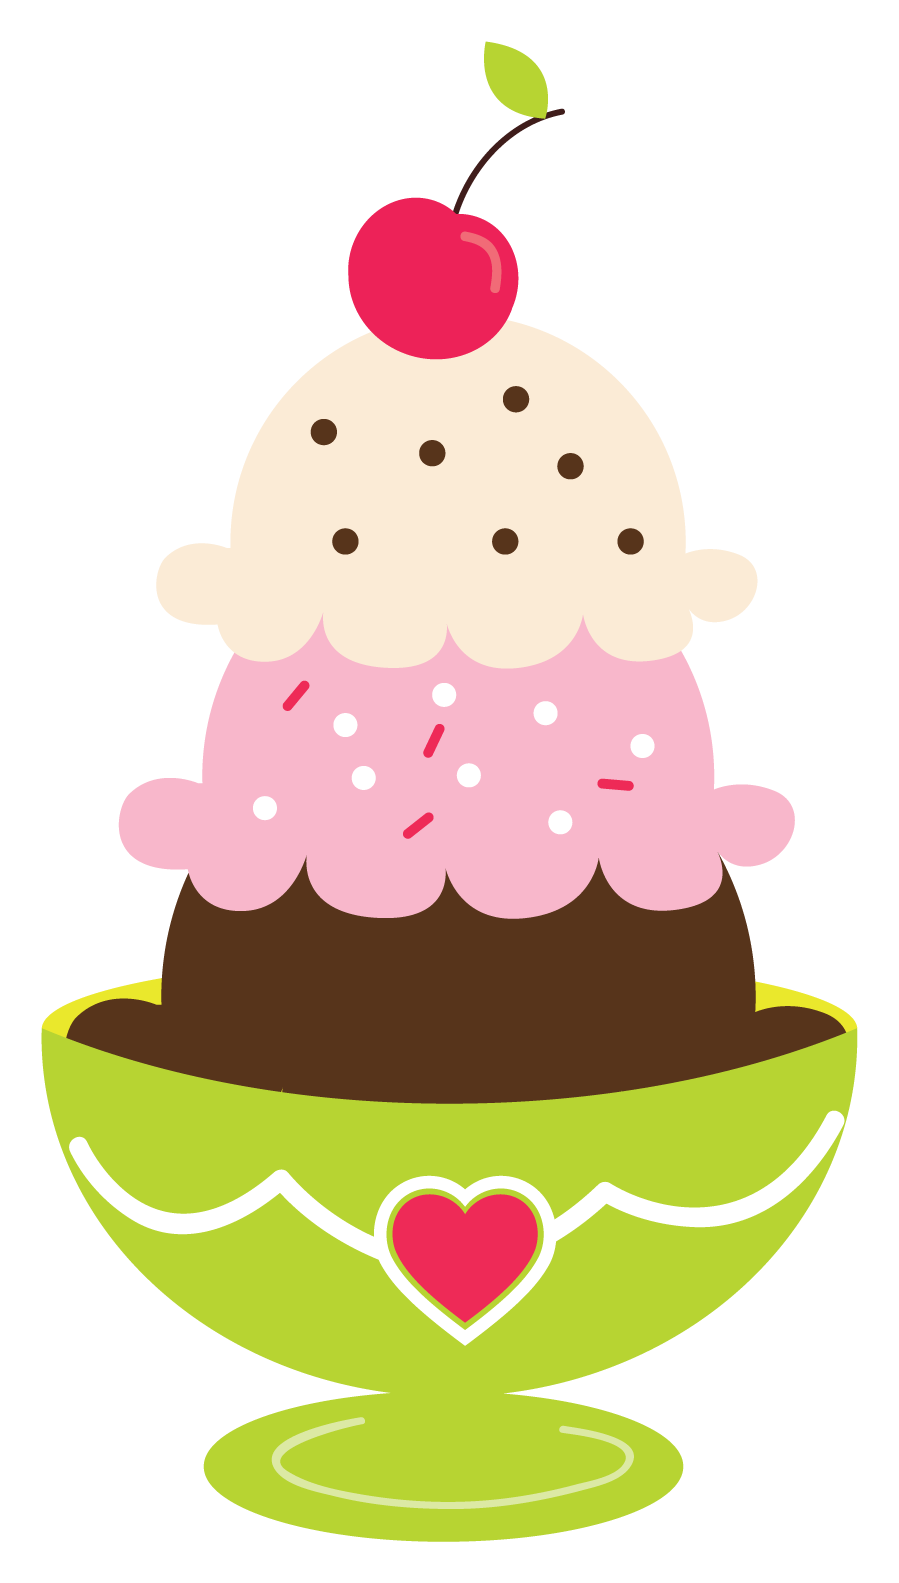 Ice cream clipart free clipartall 3-Ice cream clipart free clipartall 3-18